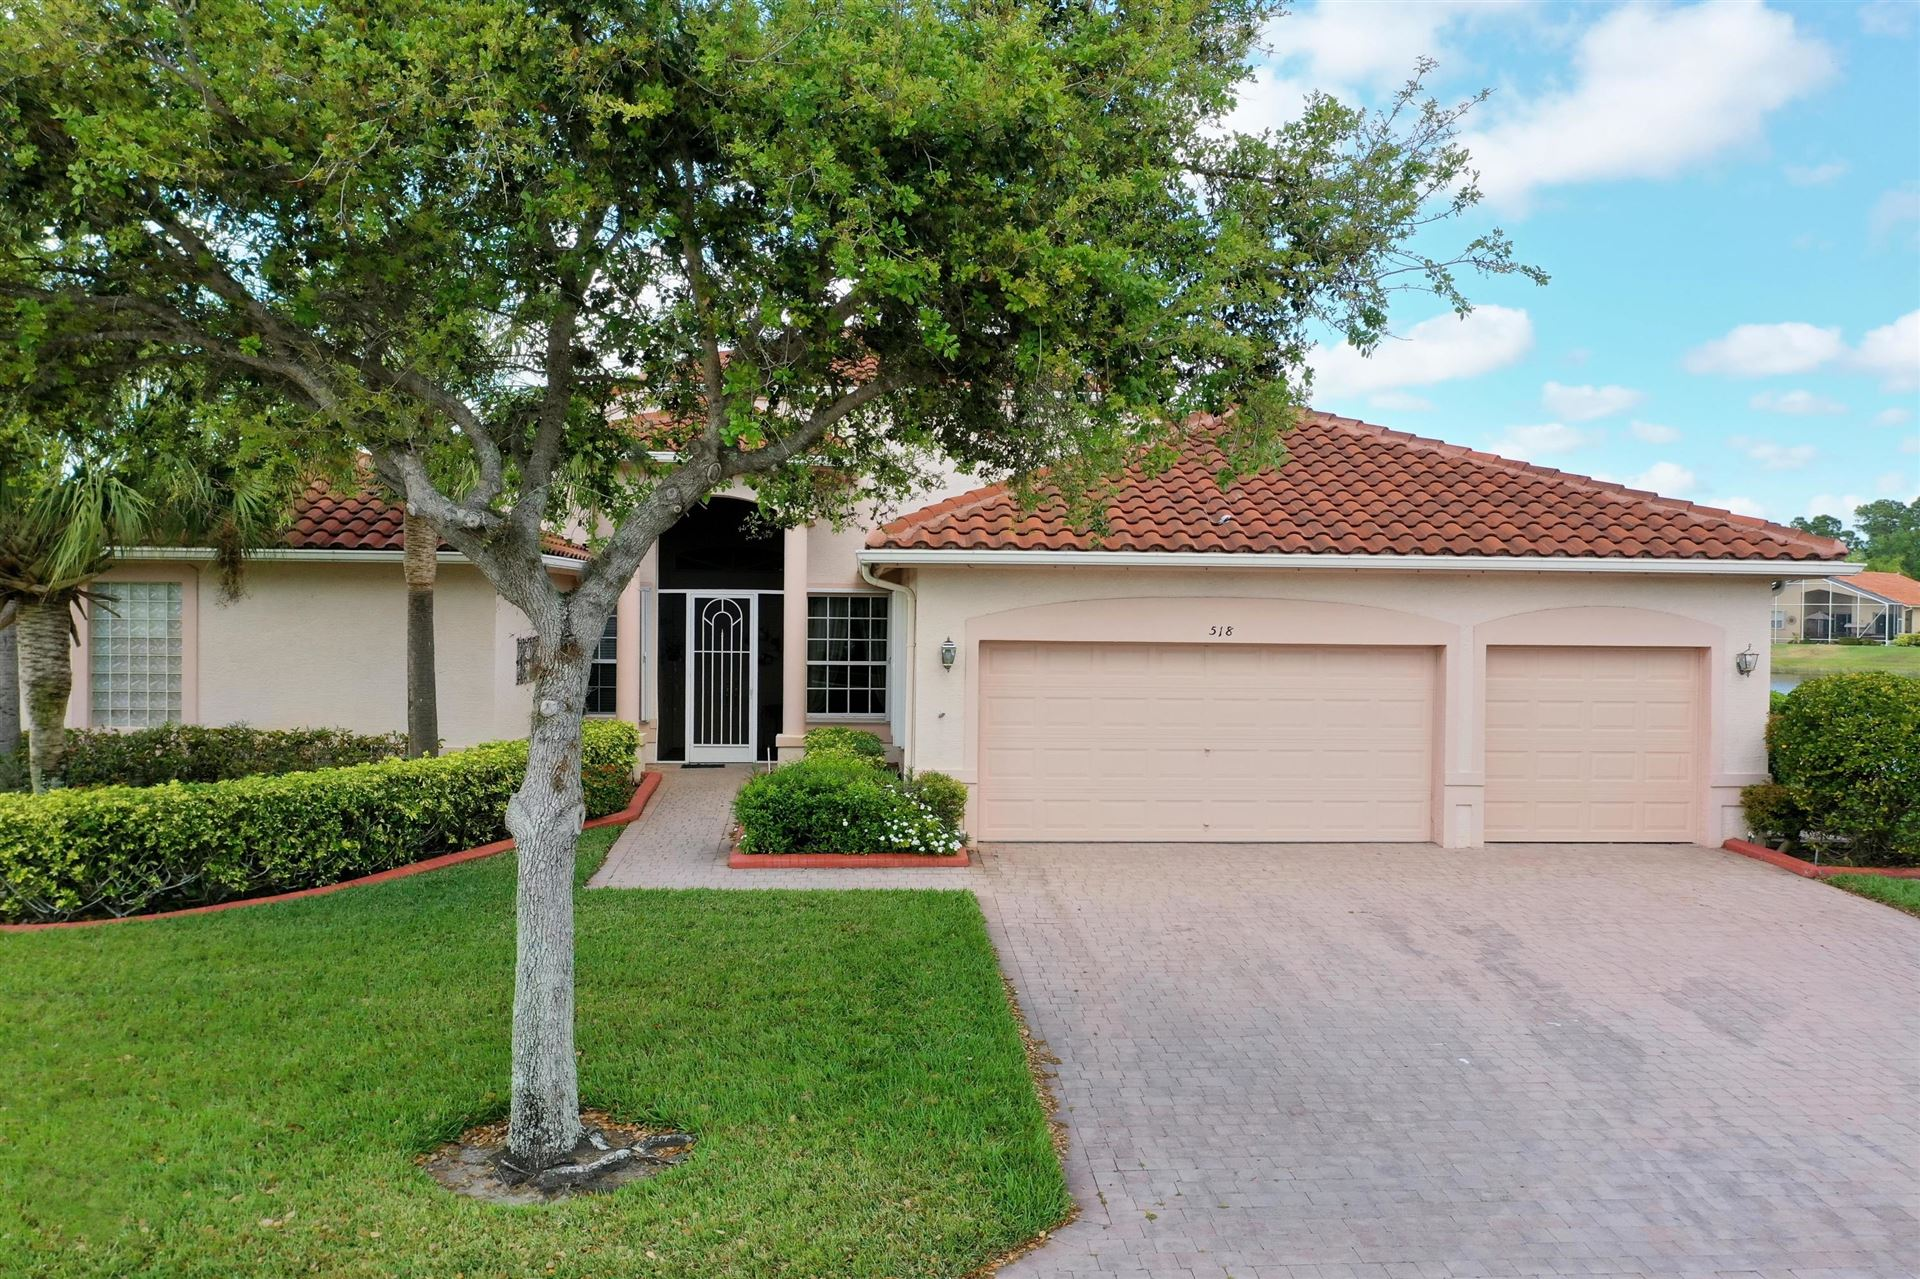 518 NW Blue Lake Drive, Port Saint Lucie, FL 34986 - #: RX-10612248